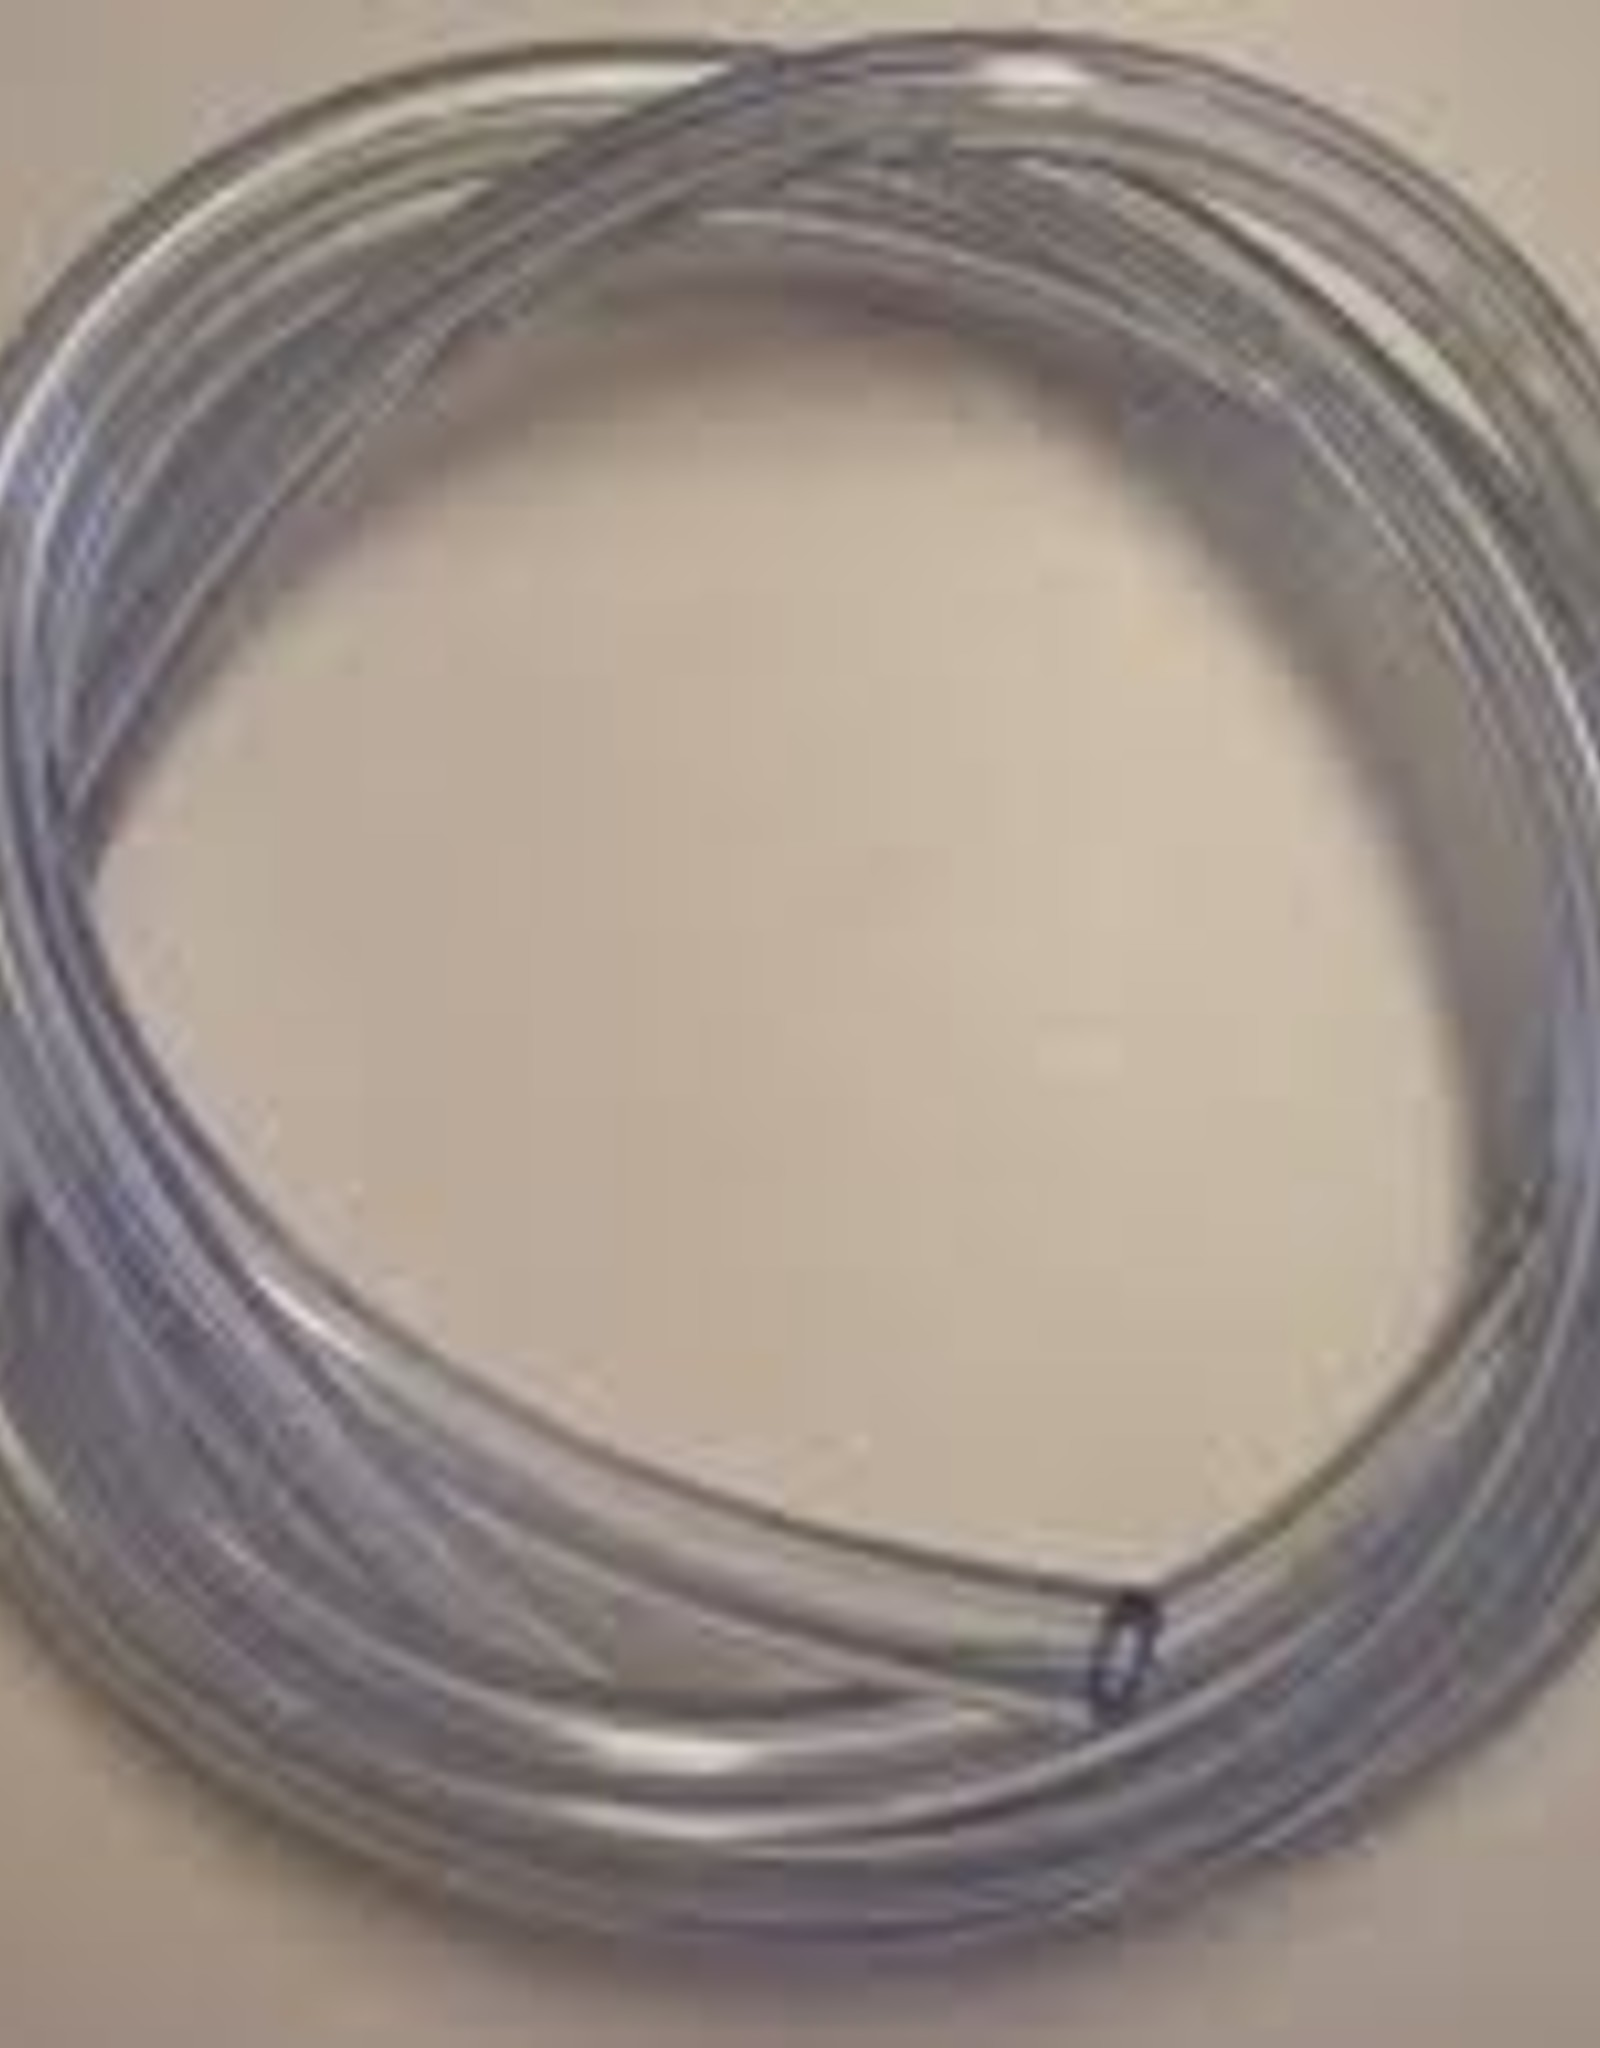 """CROSBY & BAKER 4' of 1/4"""" BEVERAGE TUBING by the foot"""